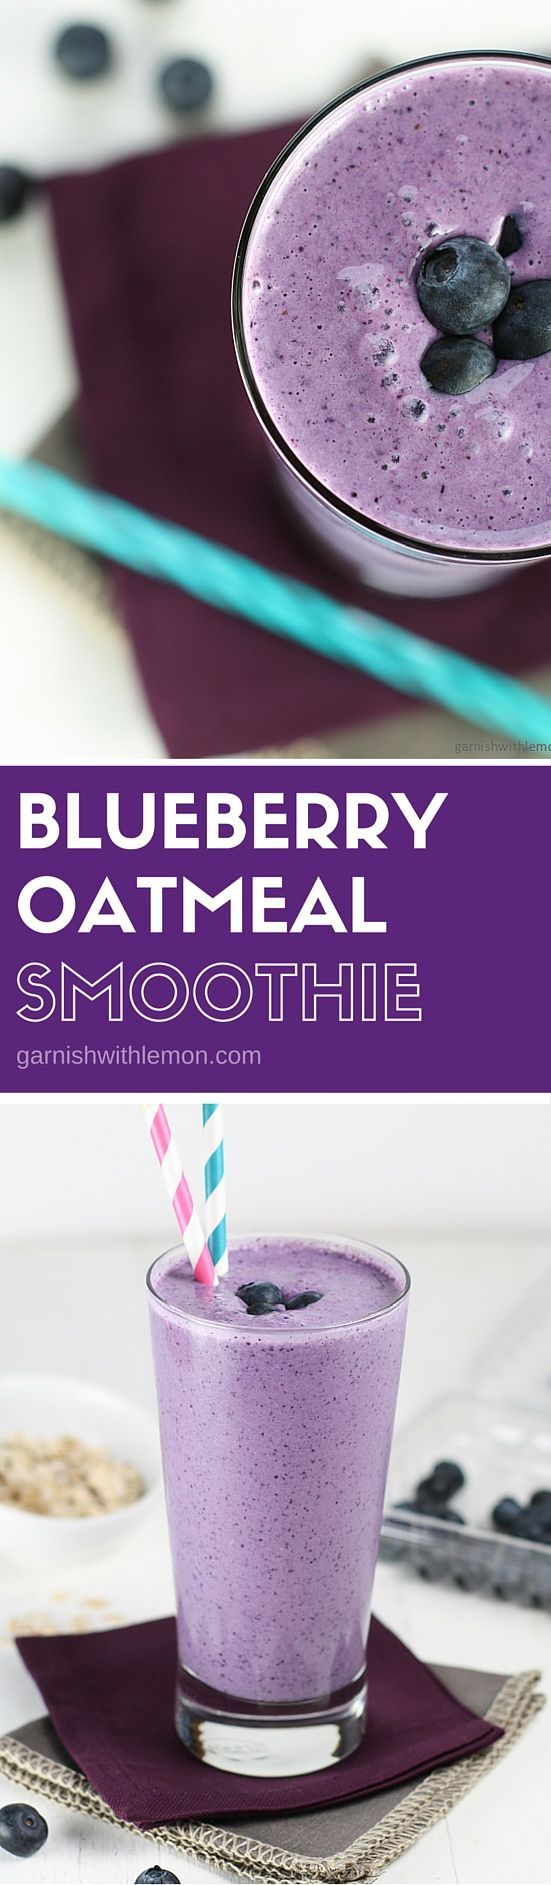 This Blueberry Oatmeal Smoothie recipe is a quick and tasty way to pack some protein into your on-the-go breakfast.